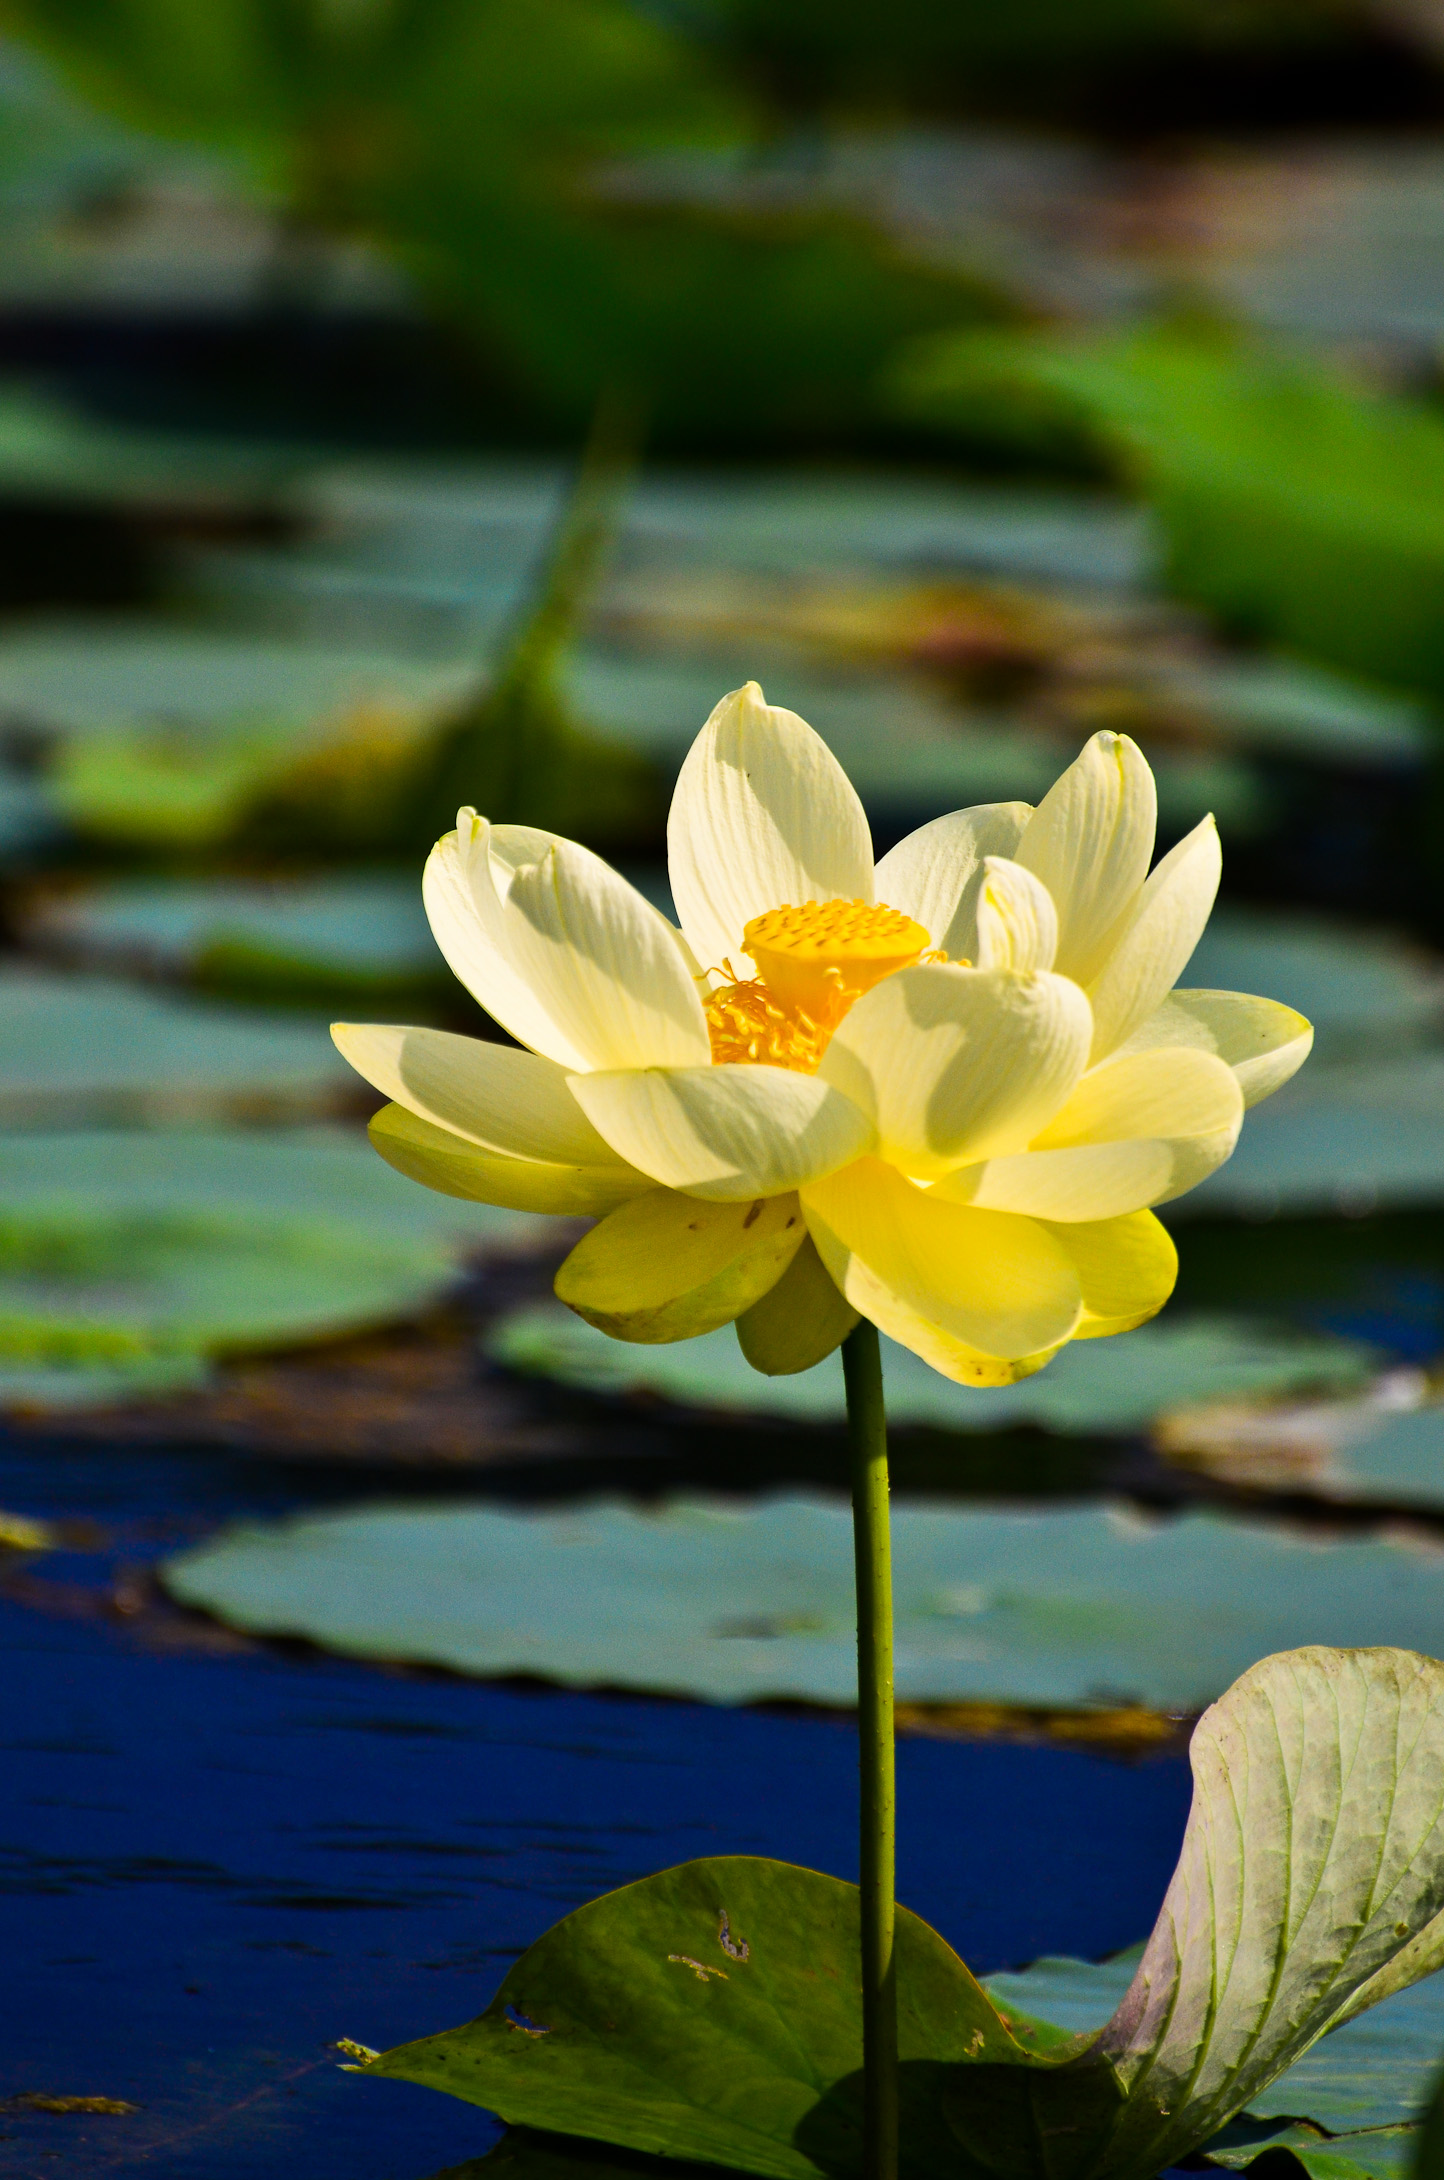 Lotus flower and water everyday nature scenes lotus flower and water izmirmasajfo Images